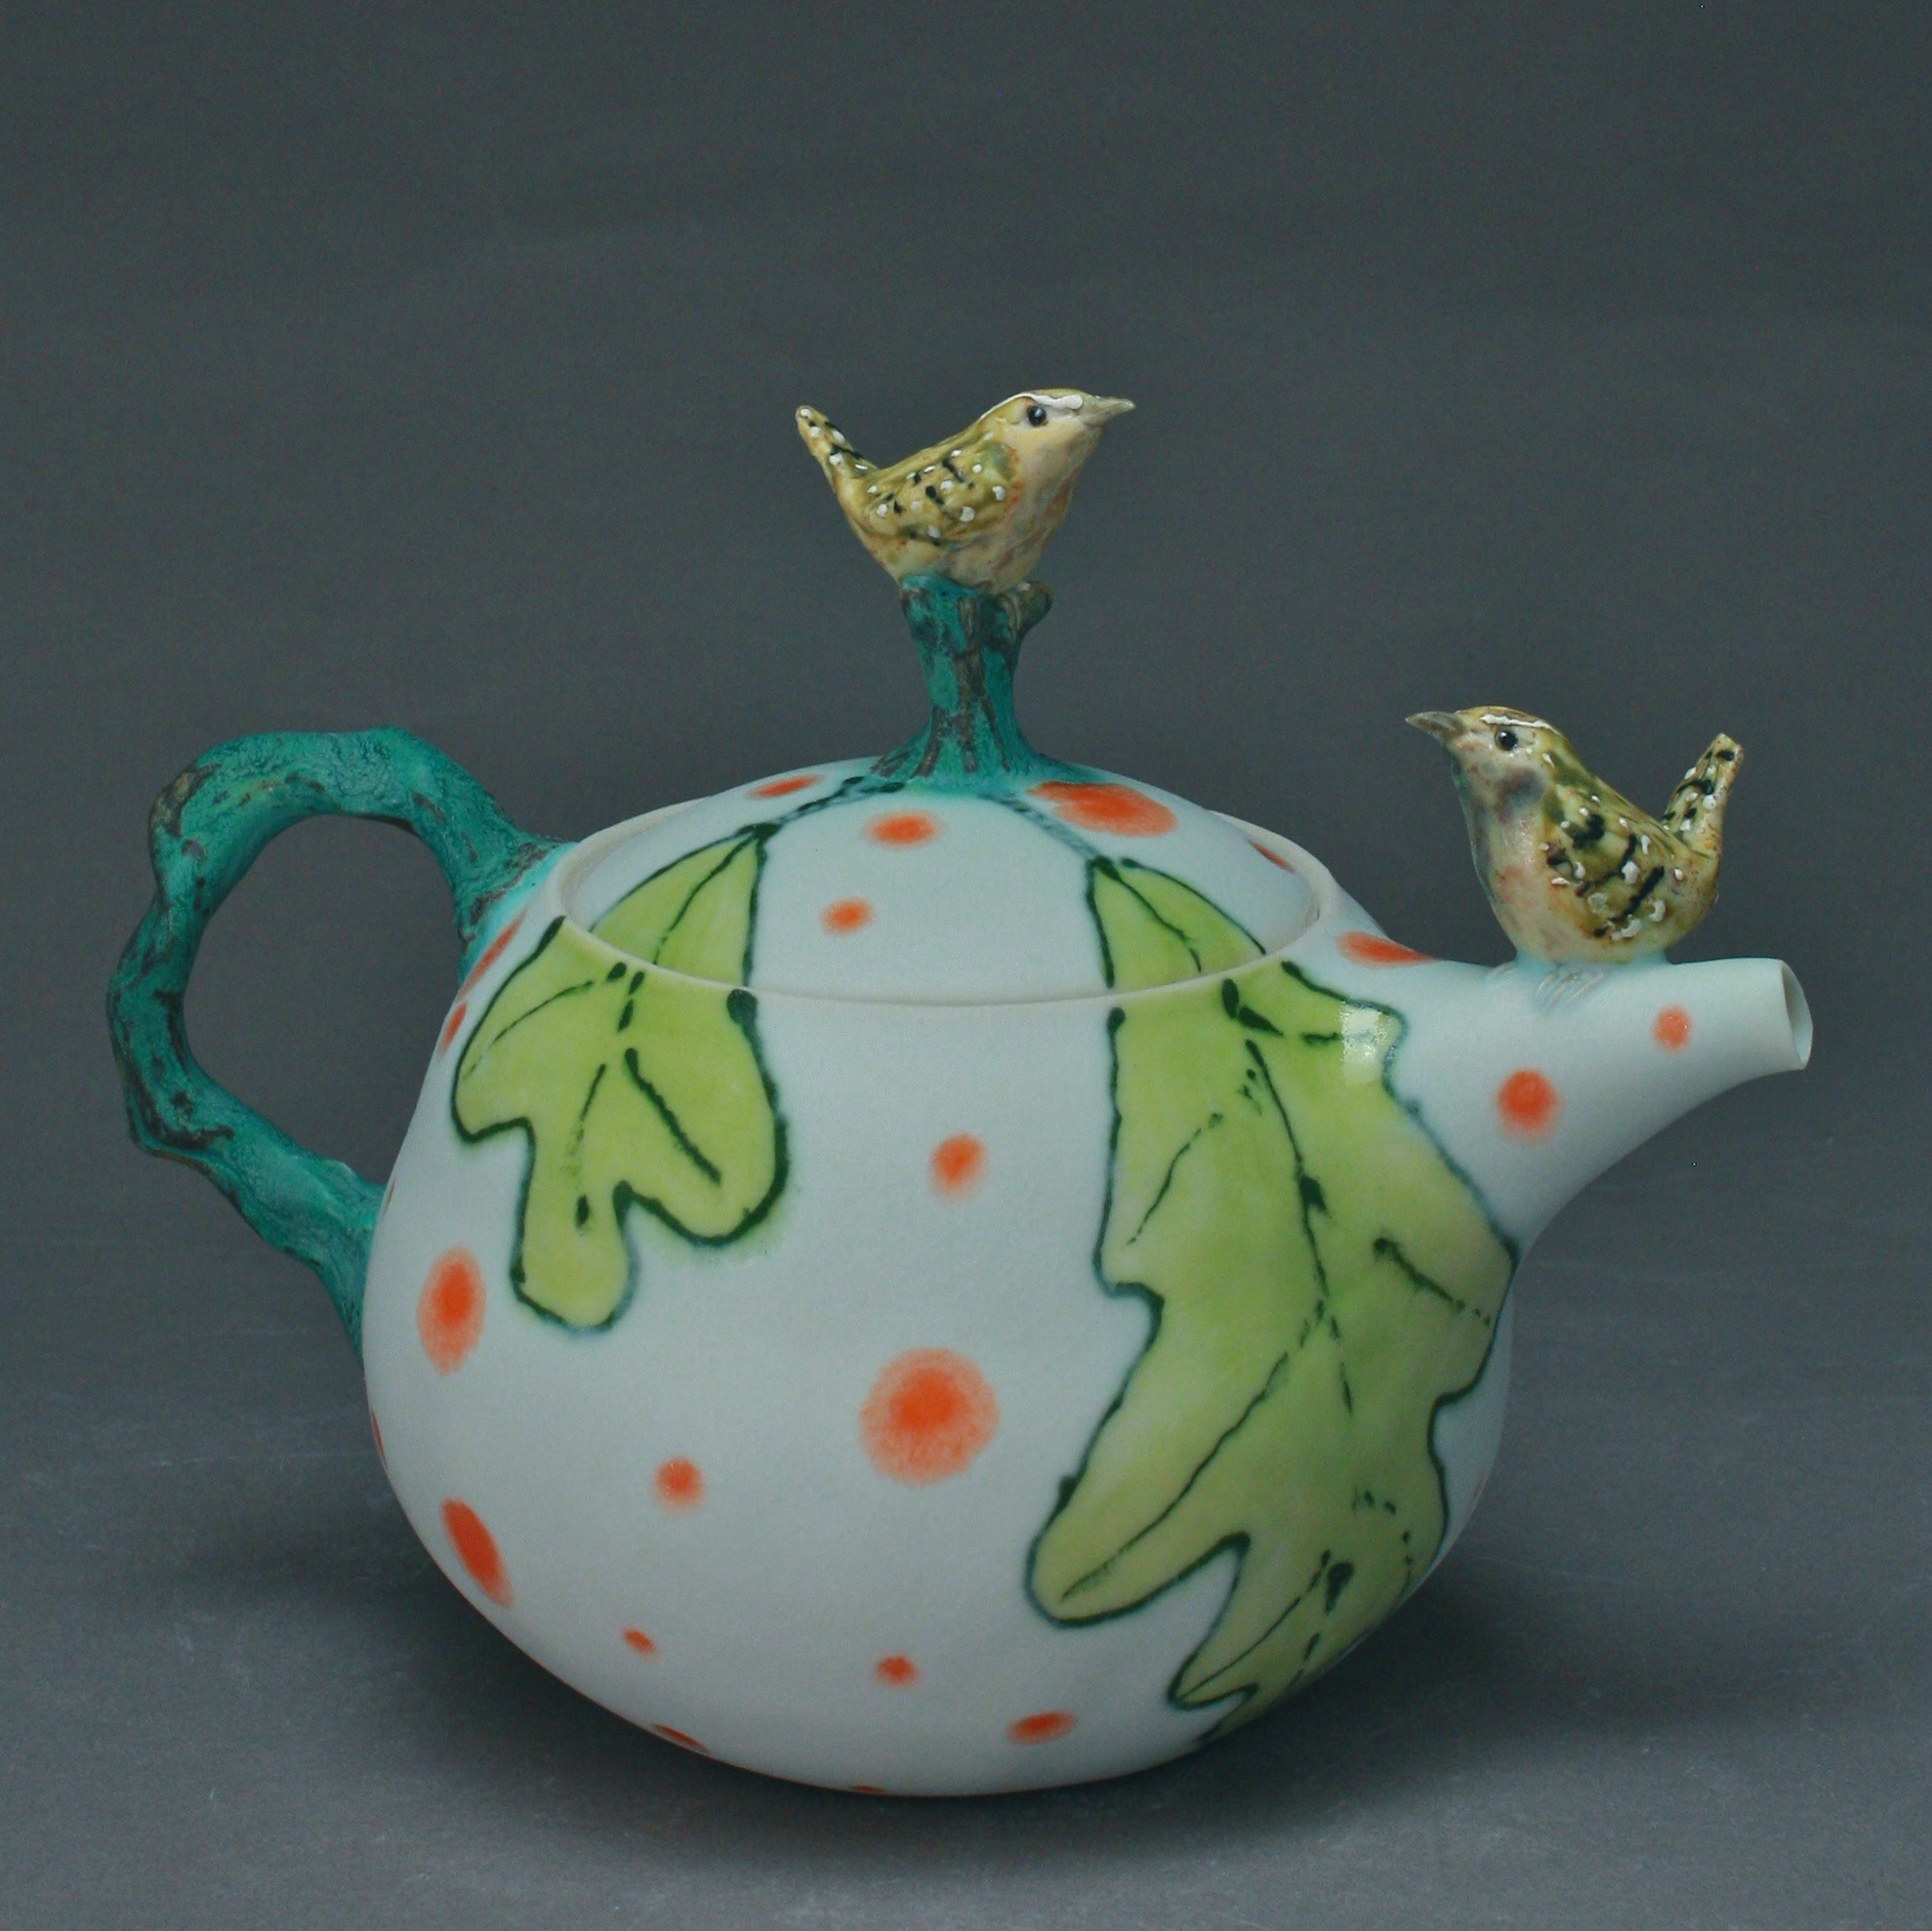 2BT-01  | Green Leaves White Teapot with Wrens ($325)